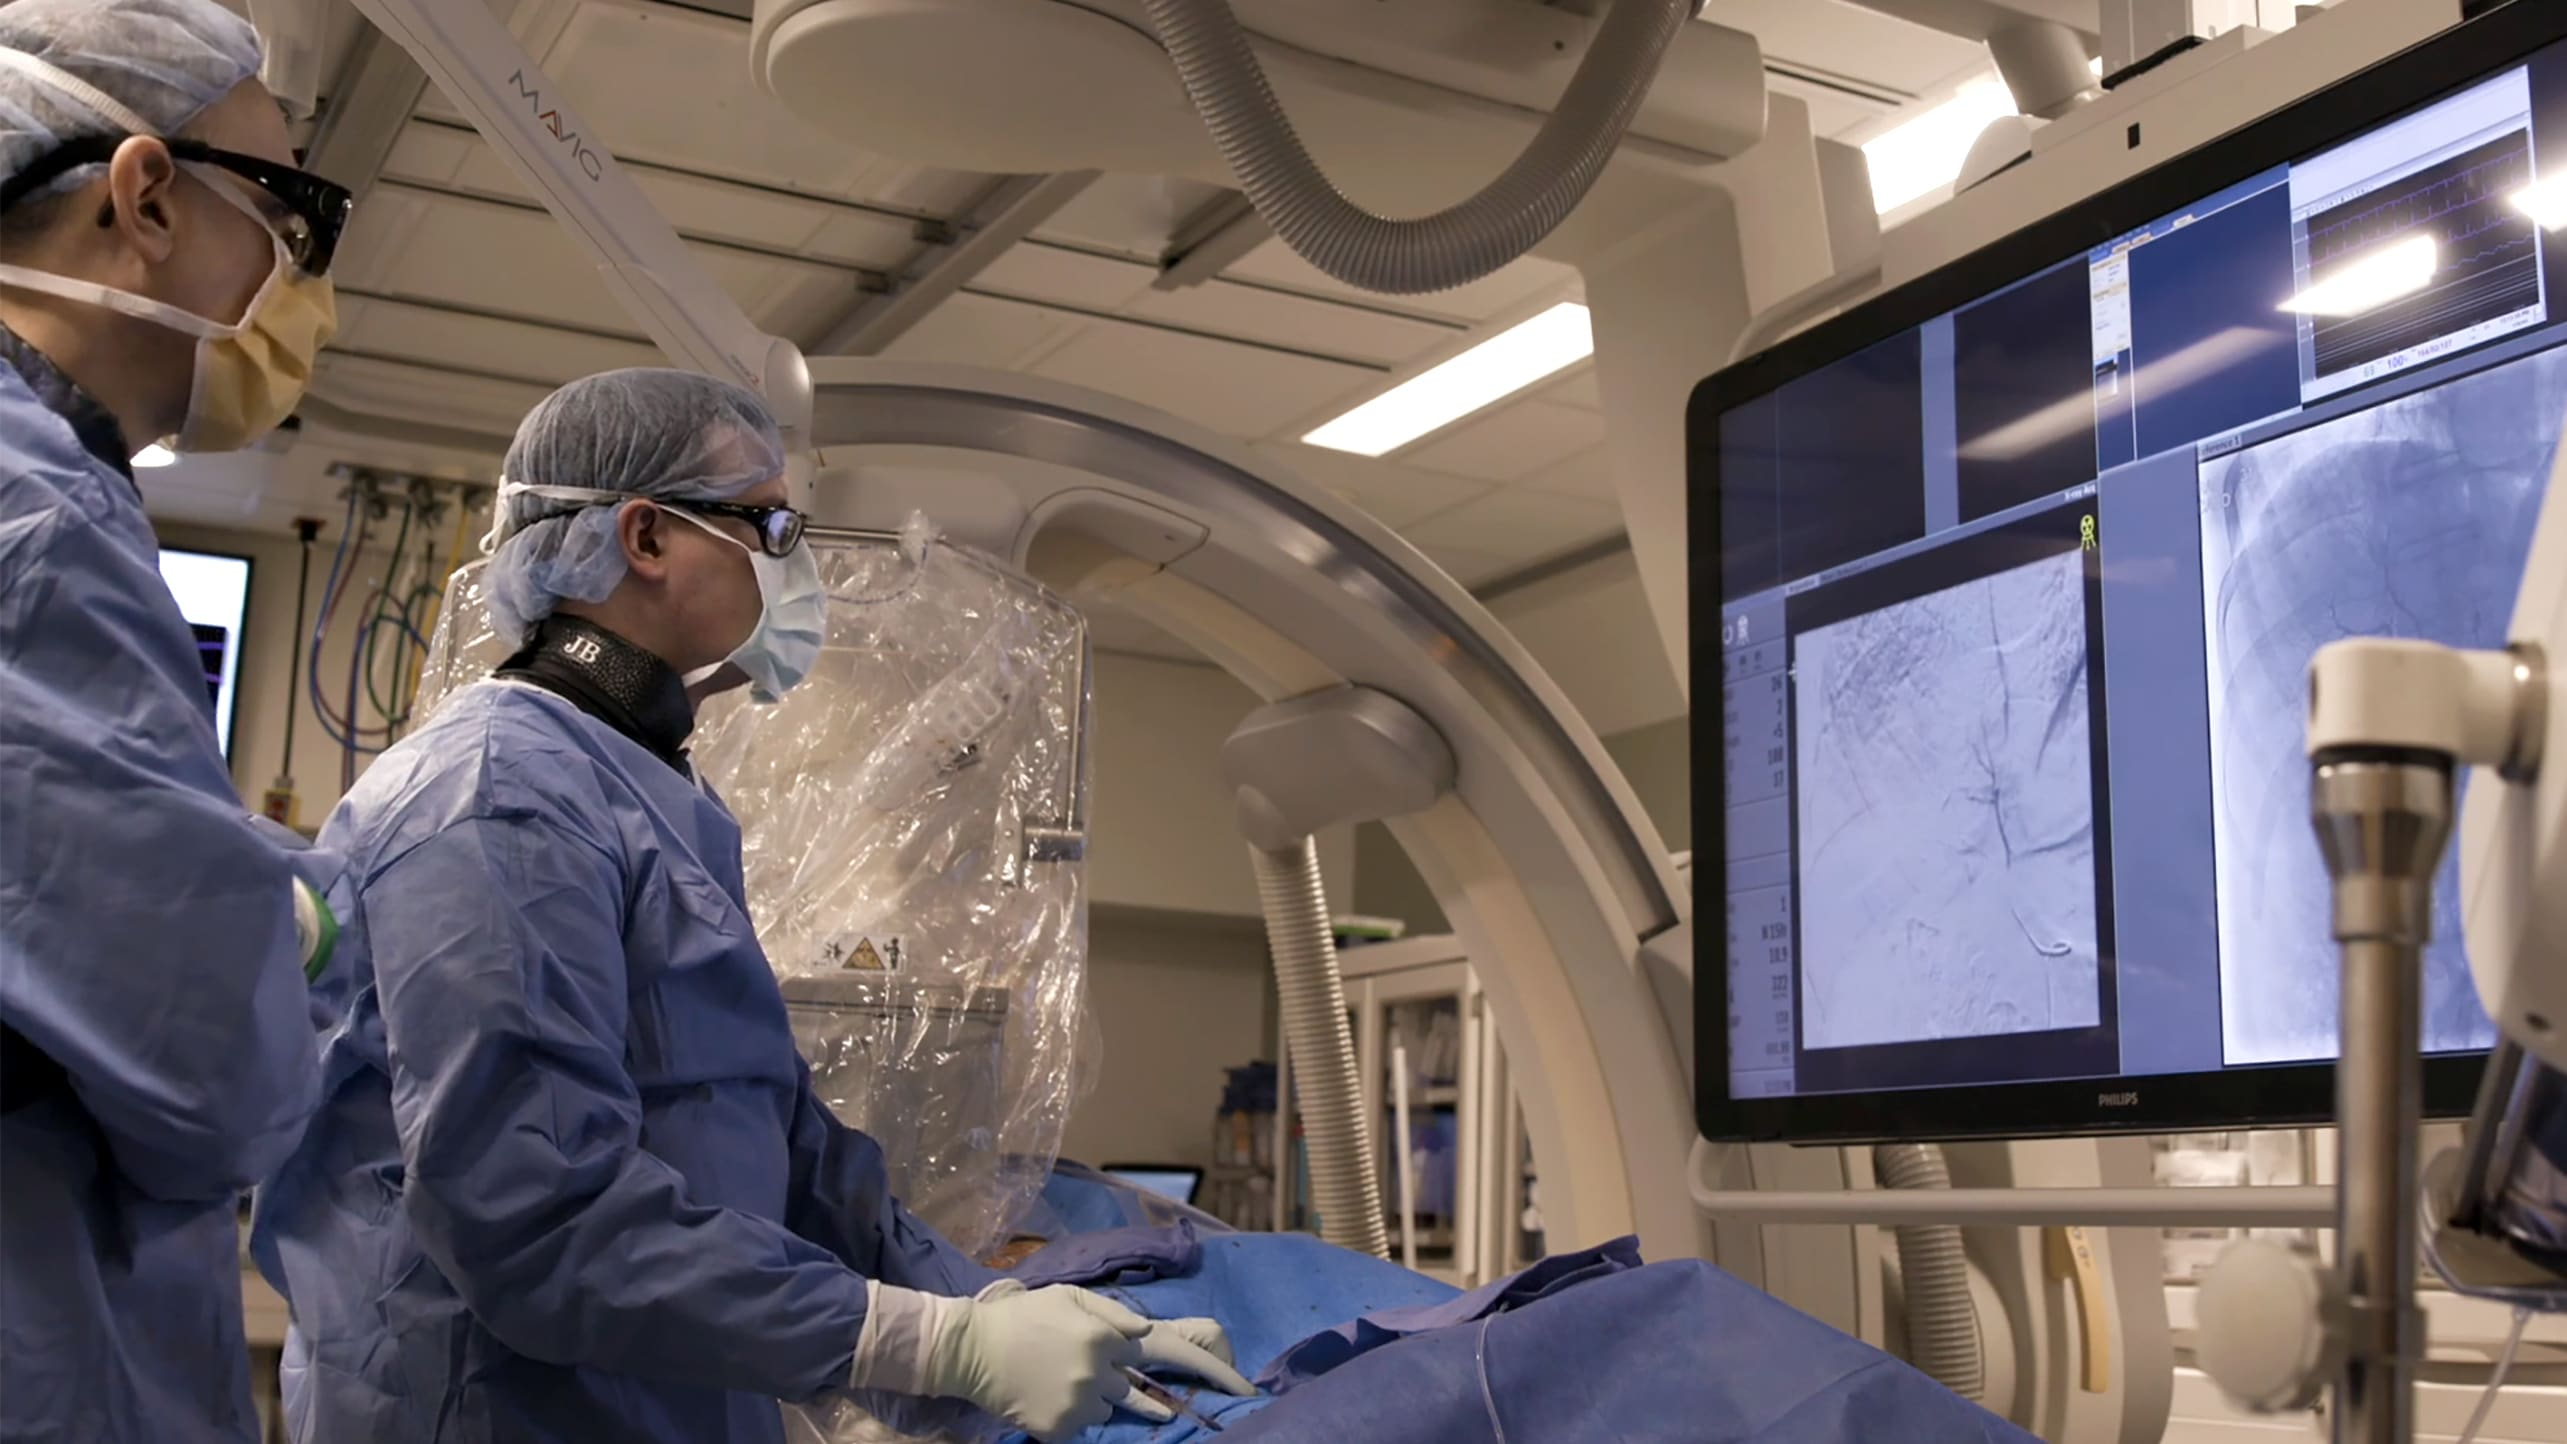 Interventional radiologist perform an interventional oncology procedure.